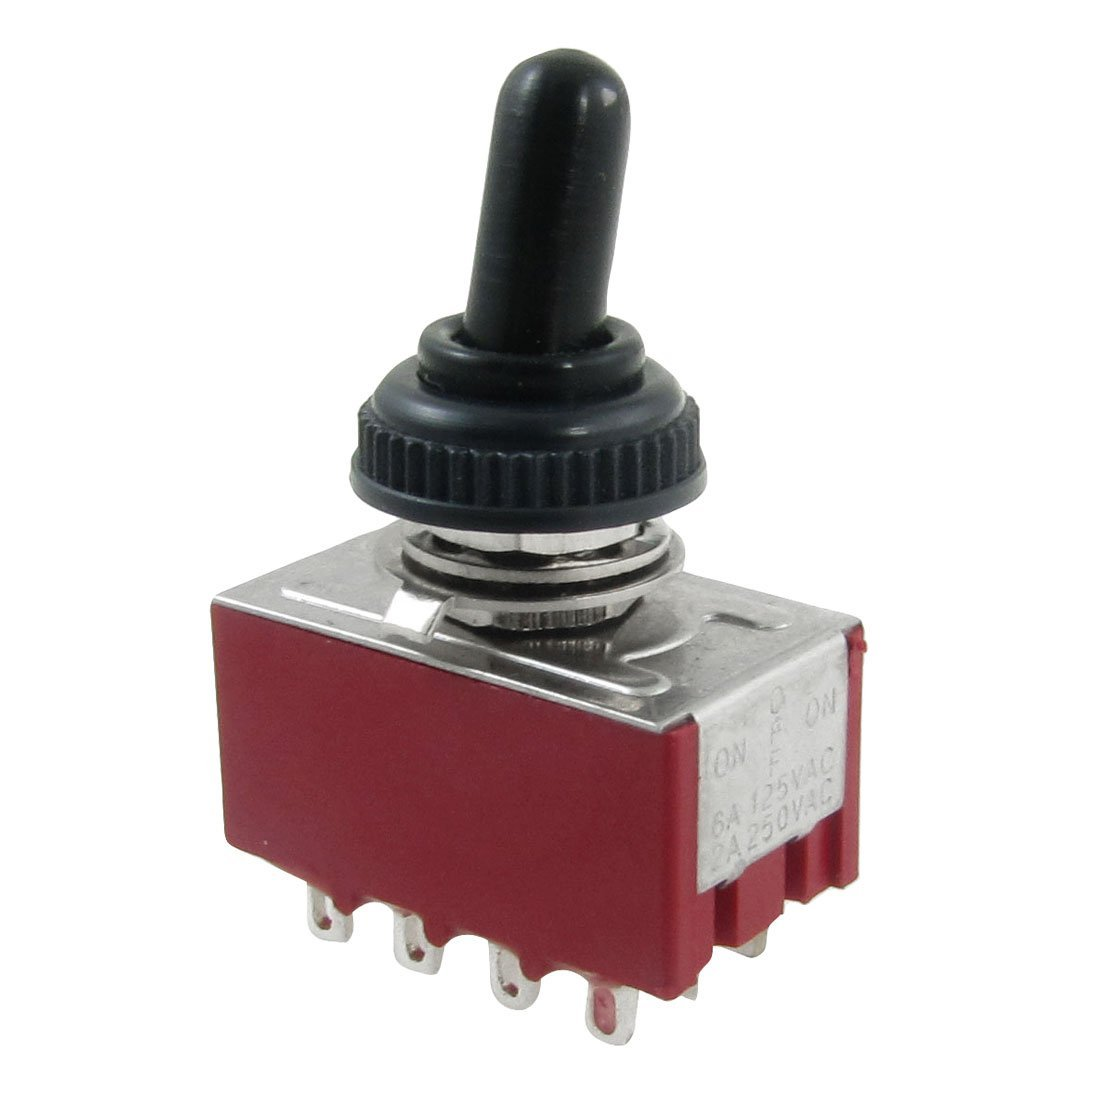 MYLB-AC 250V 2A 125V 6A on/off/on 4PDT Toggle Switch with Waterproof Boot image